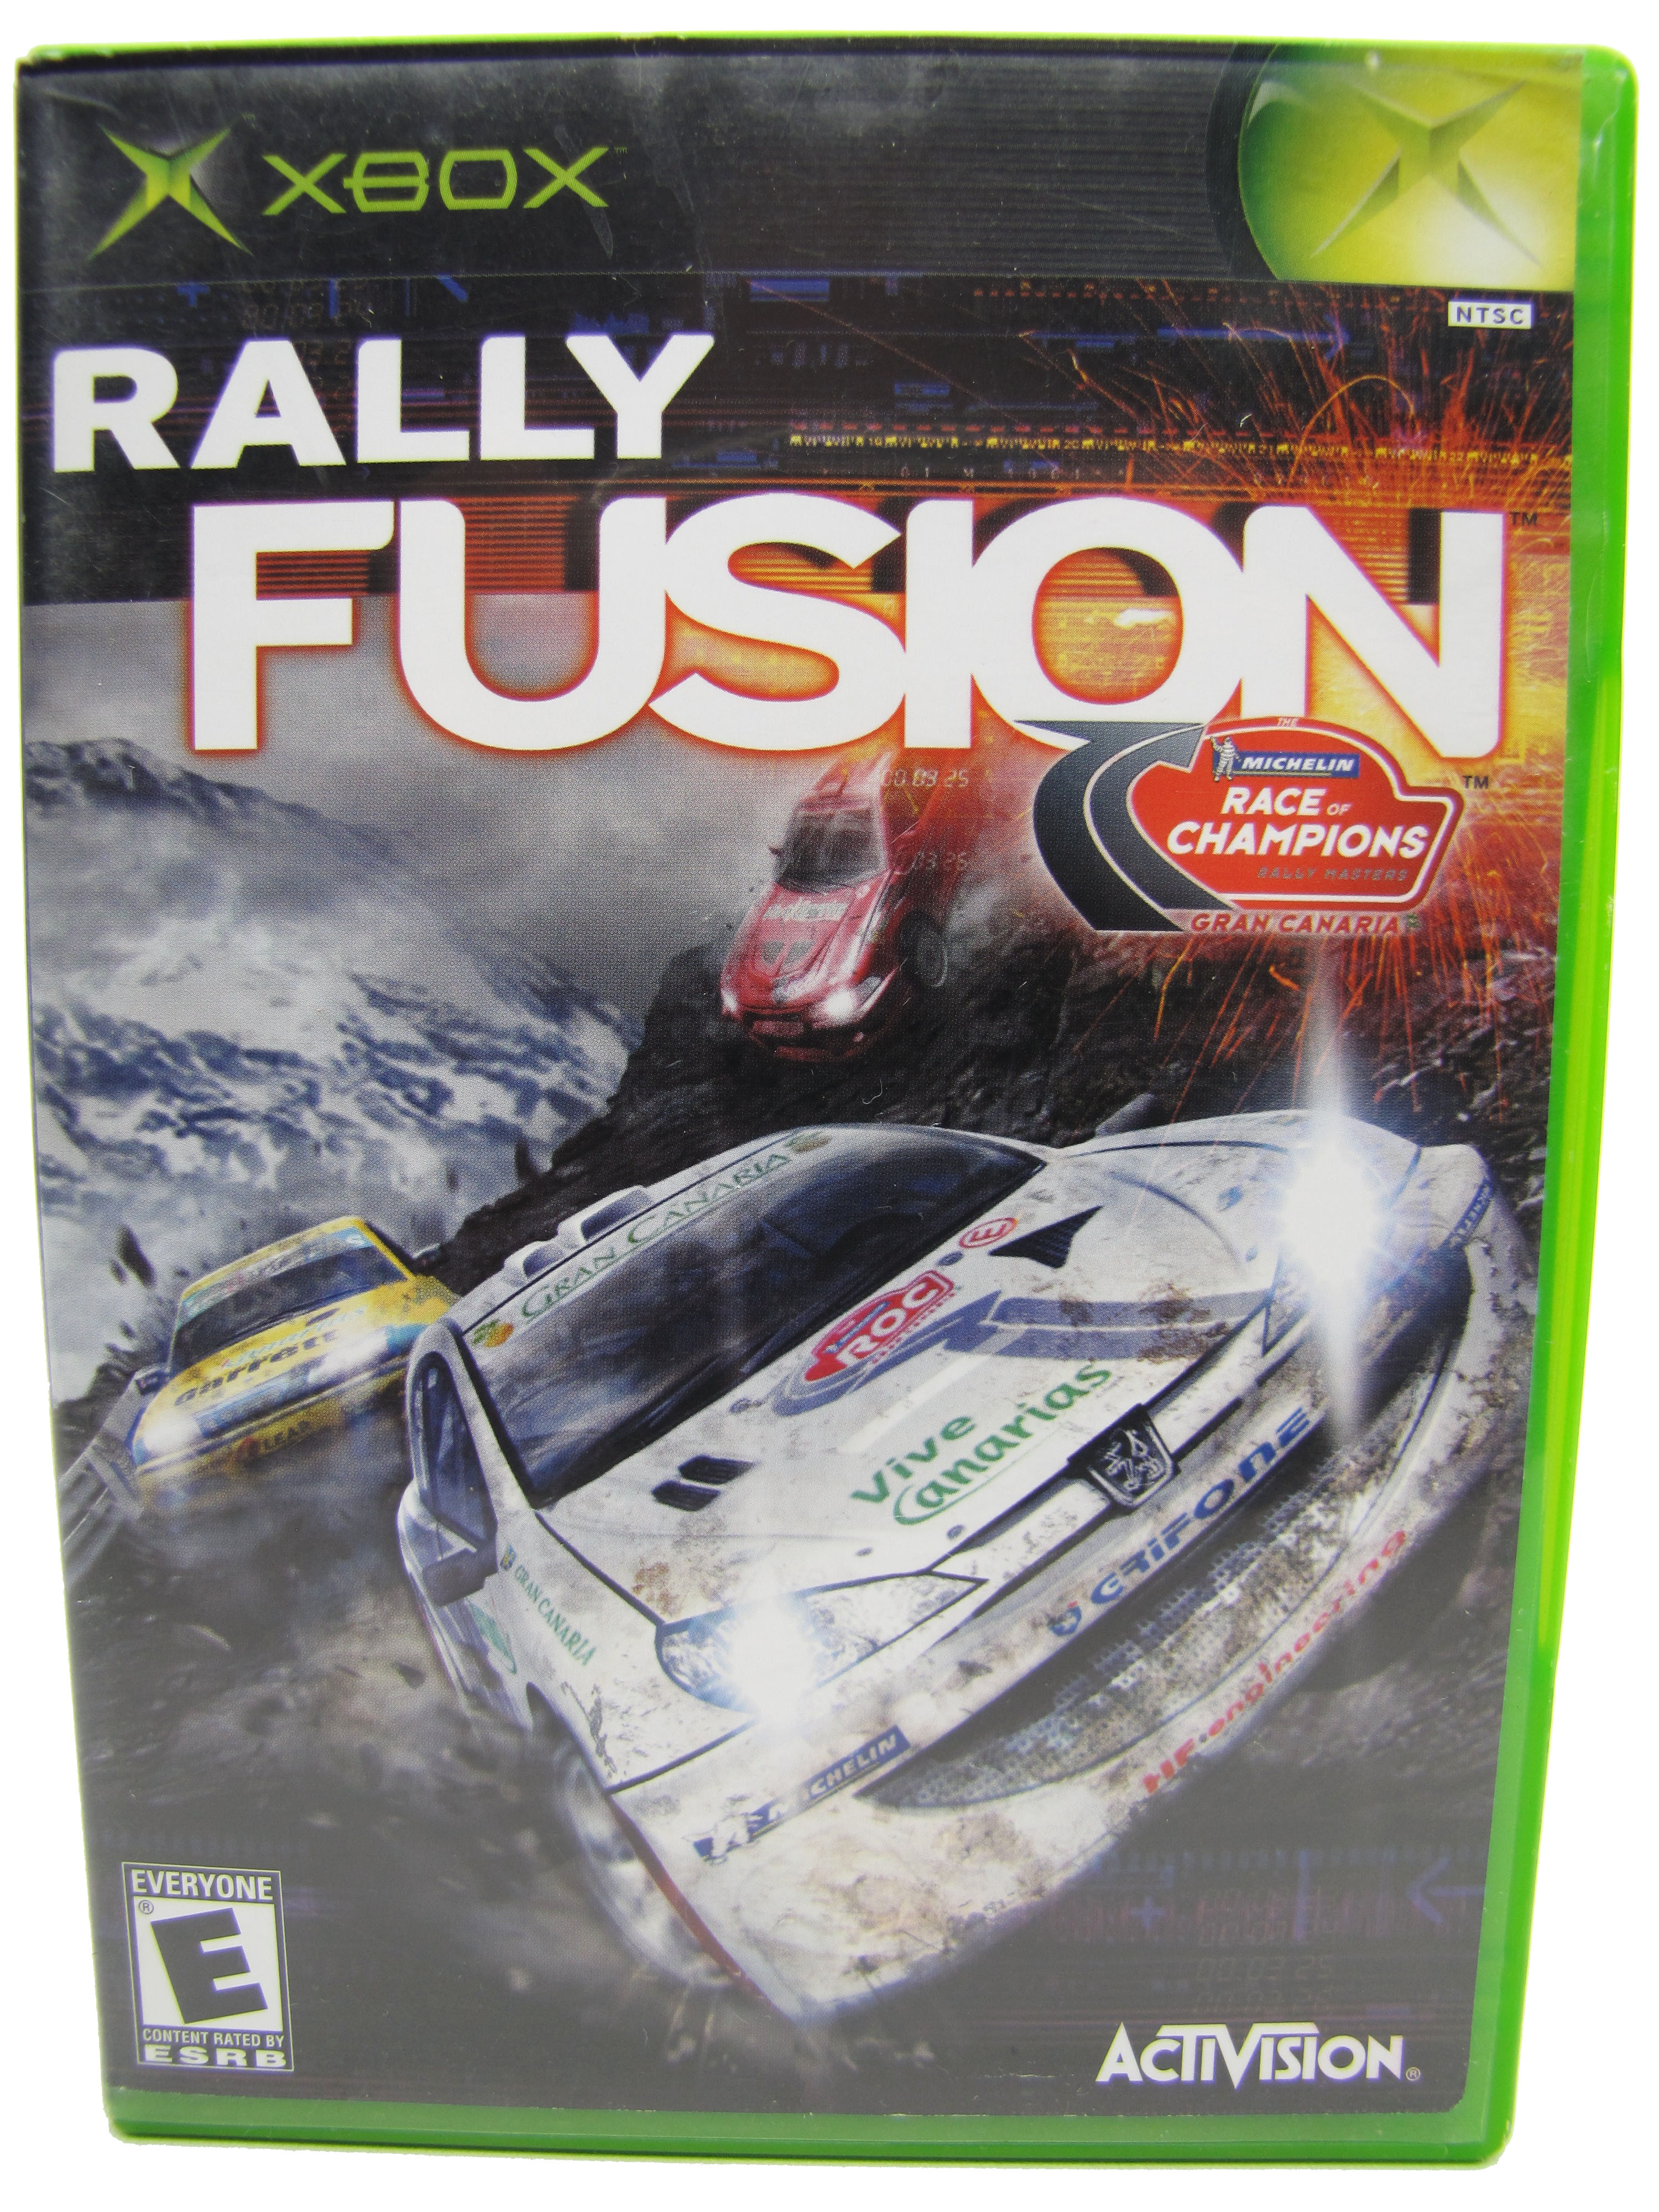 XBOX Rally Fusion: Race of Champions Complete - 2002